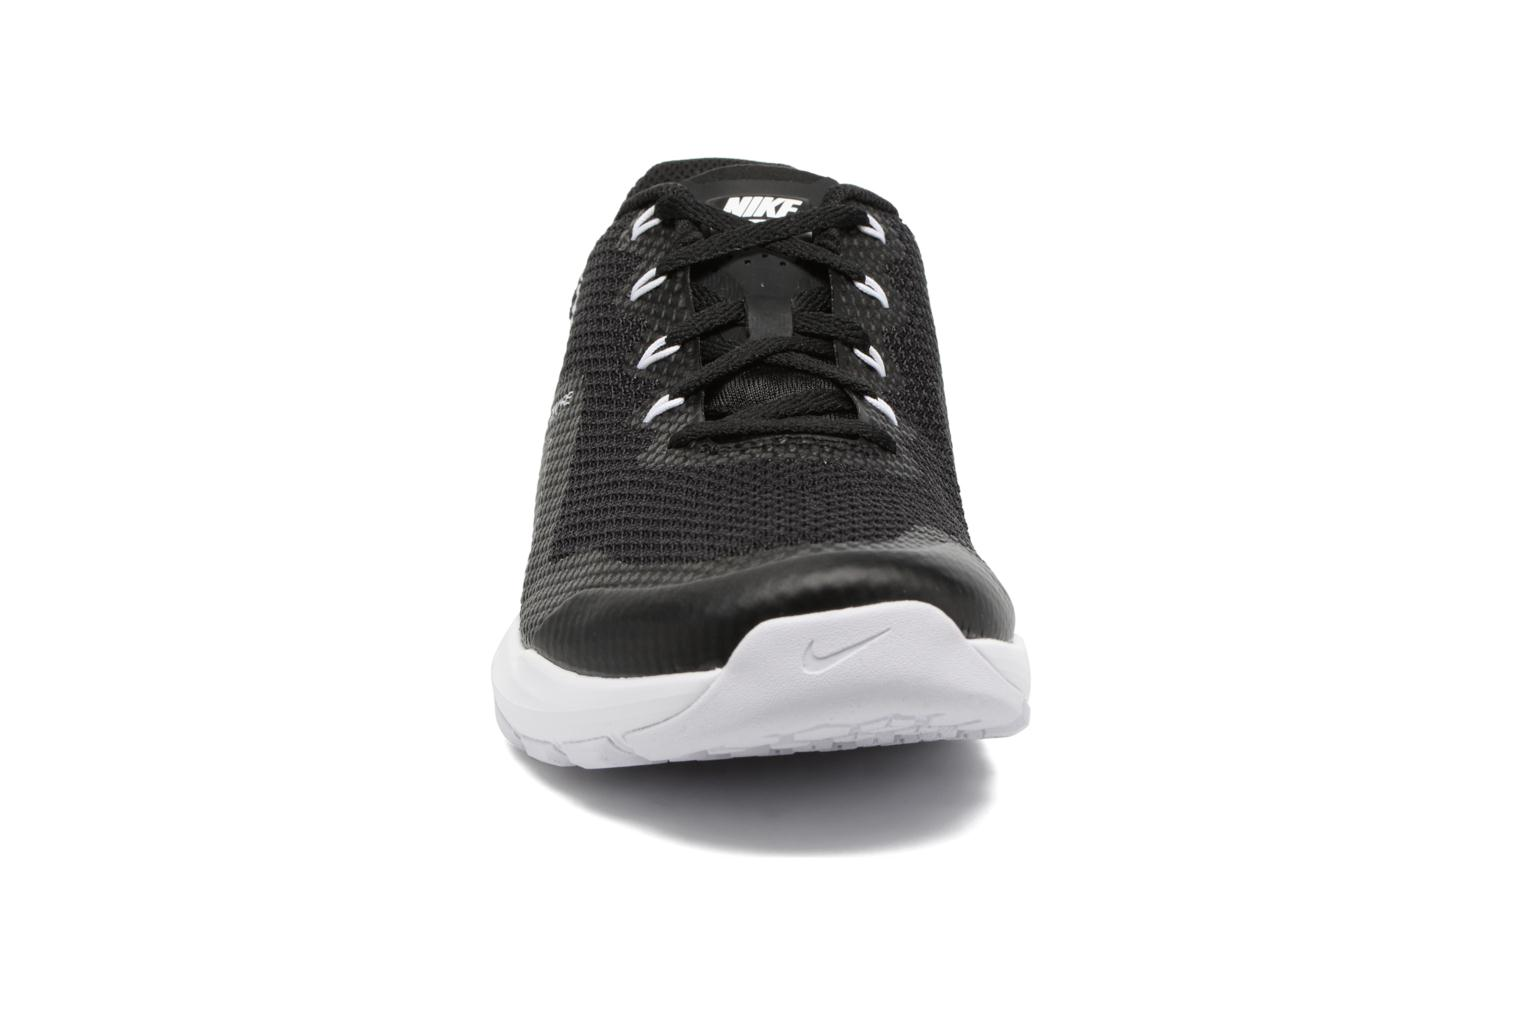 Nike Metcon Repper Dsx Black/white